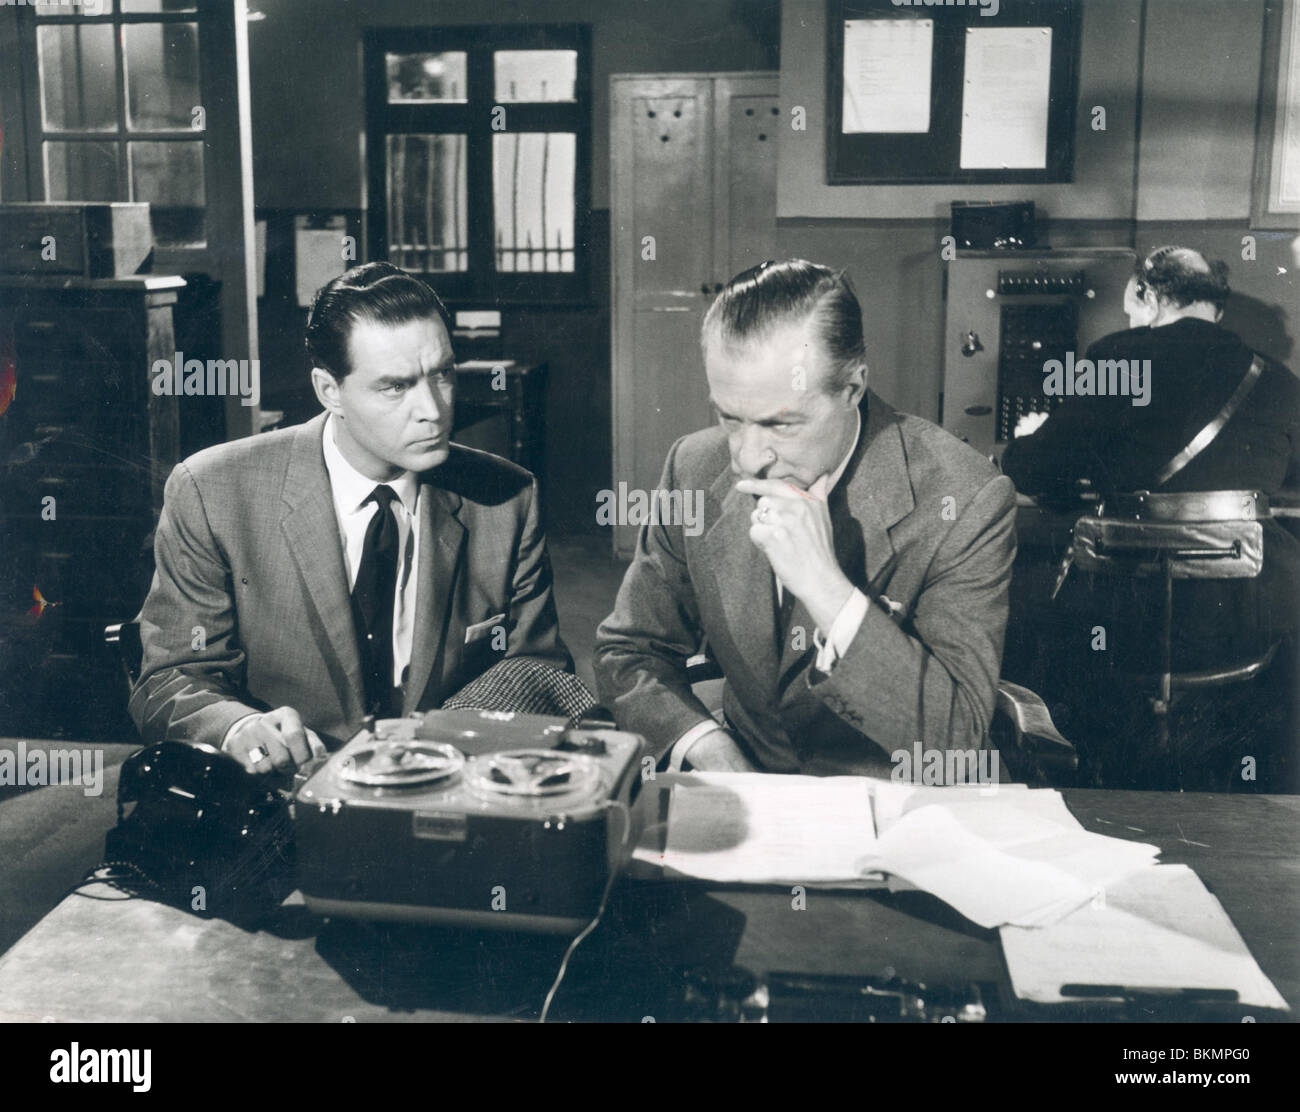 Détective INTERNATIONAL (TV) ARTHUR FLEMING INDT 006P Photo Stock